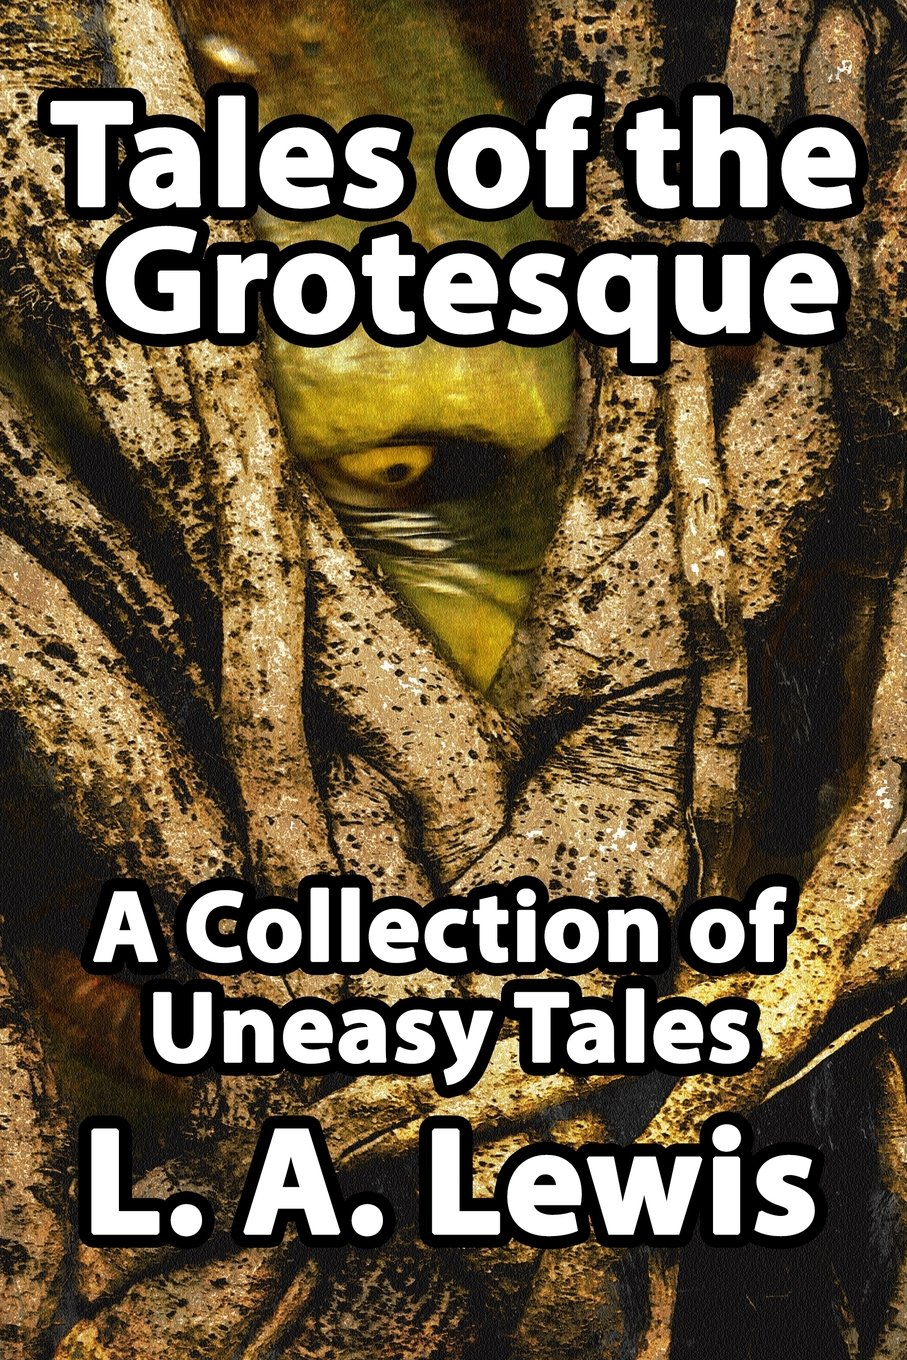 Tales of the Grotesque, by Masters of Horror